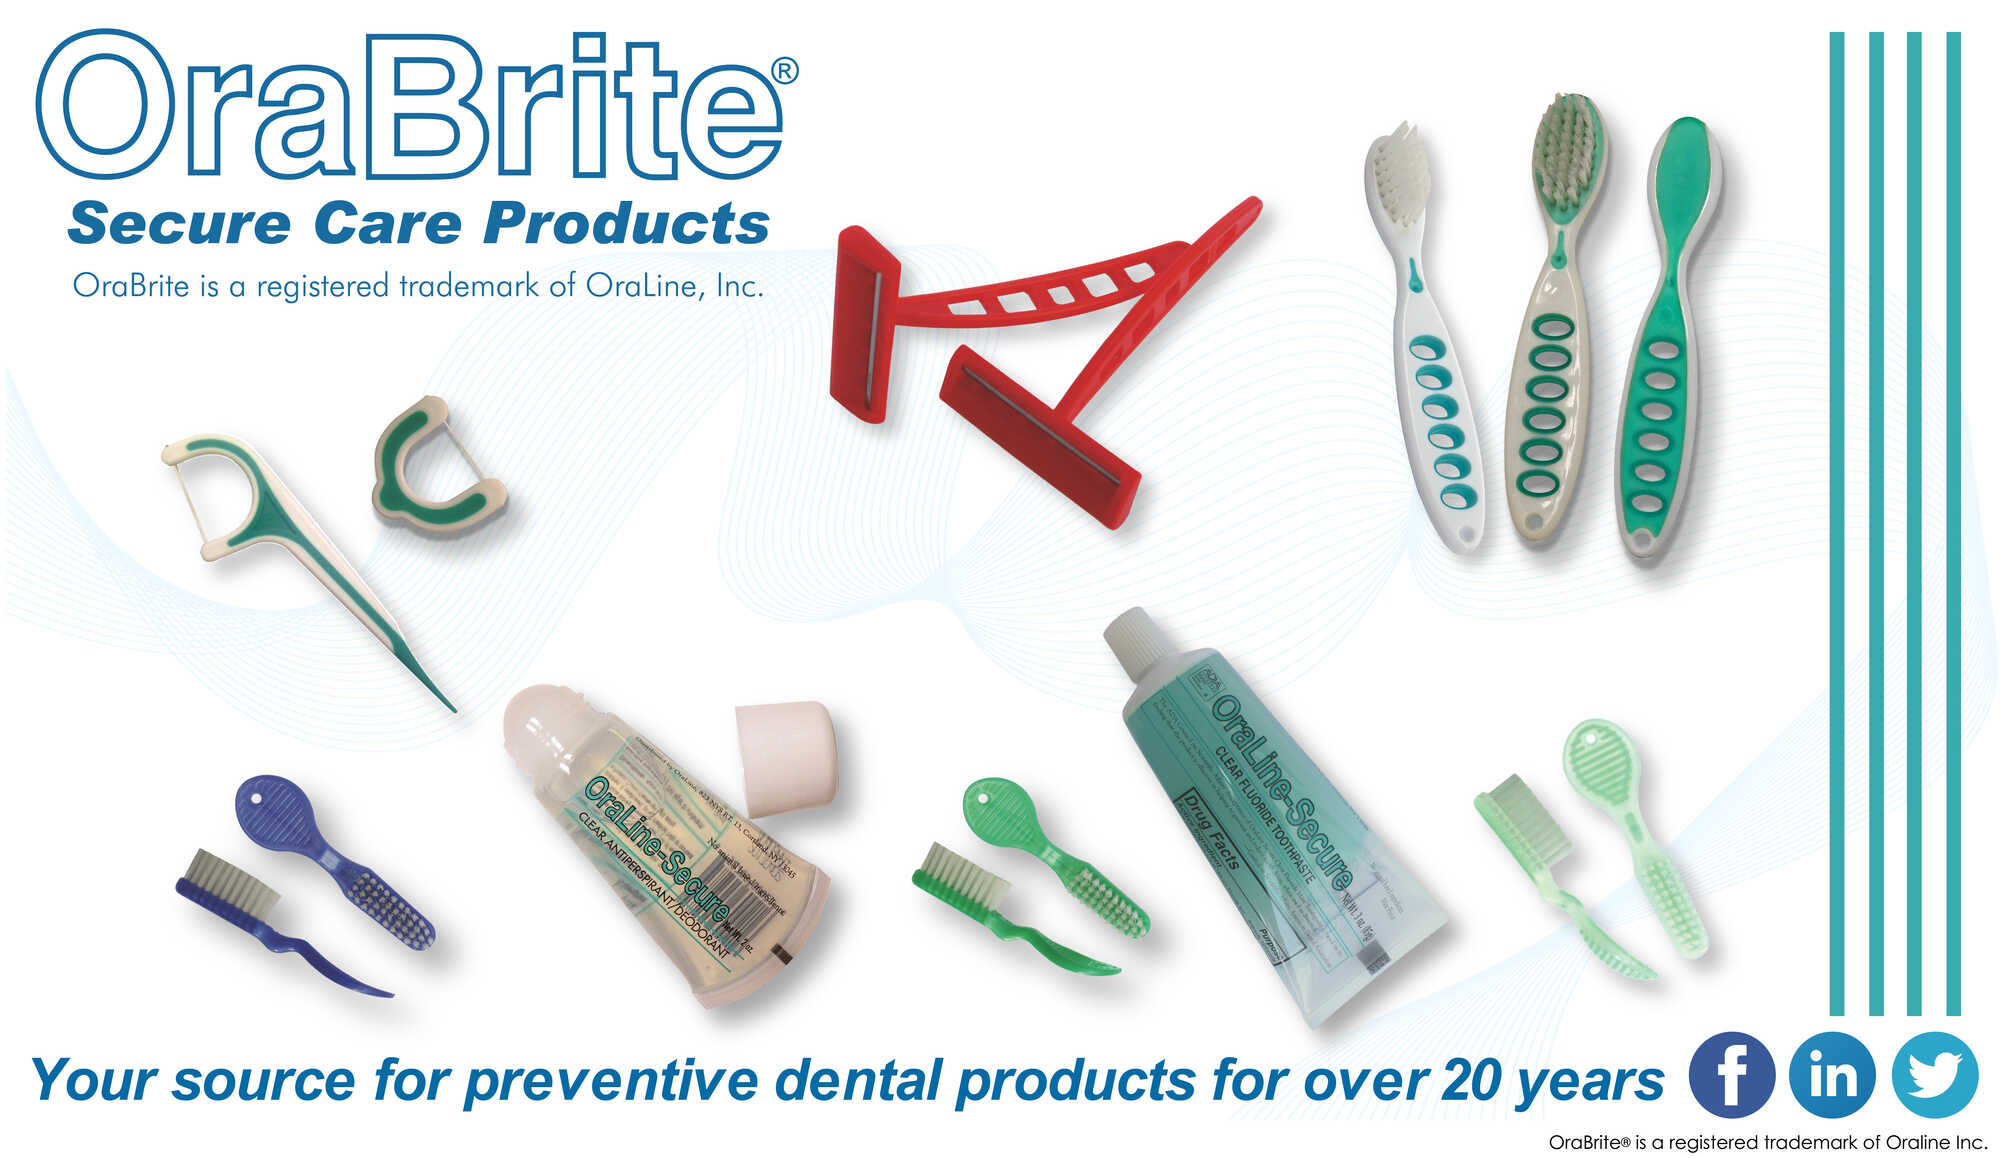 Secure Care Products